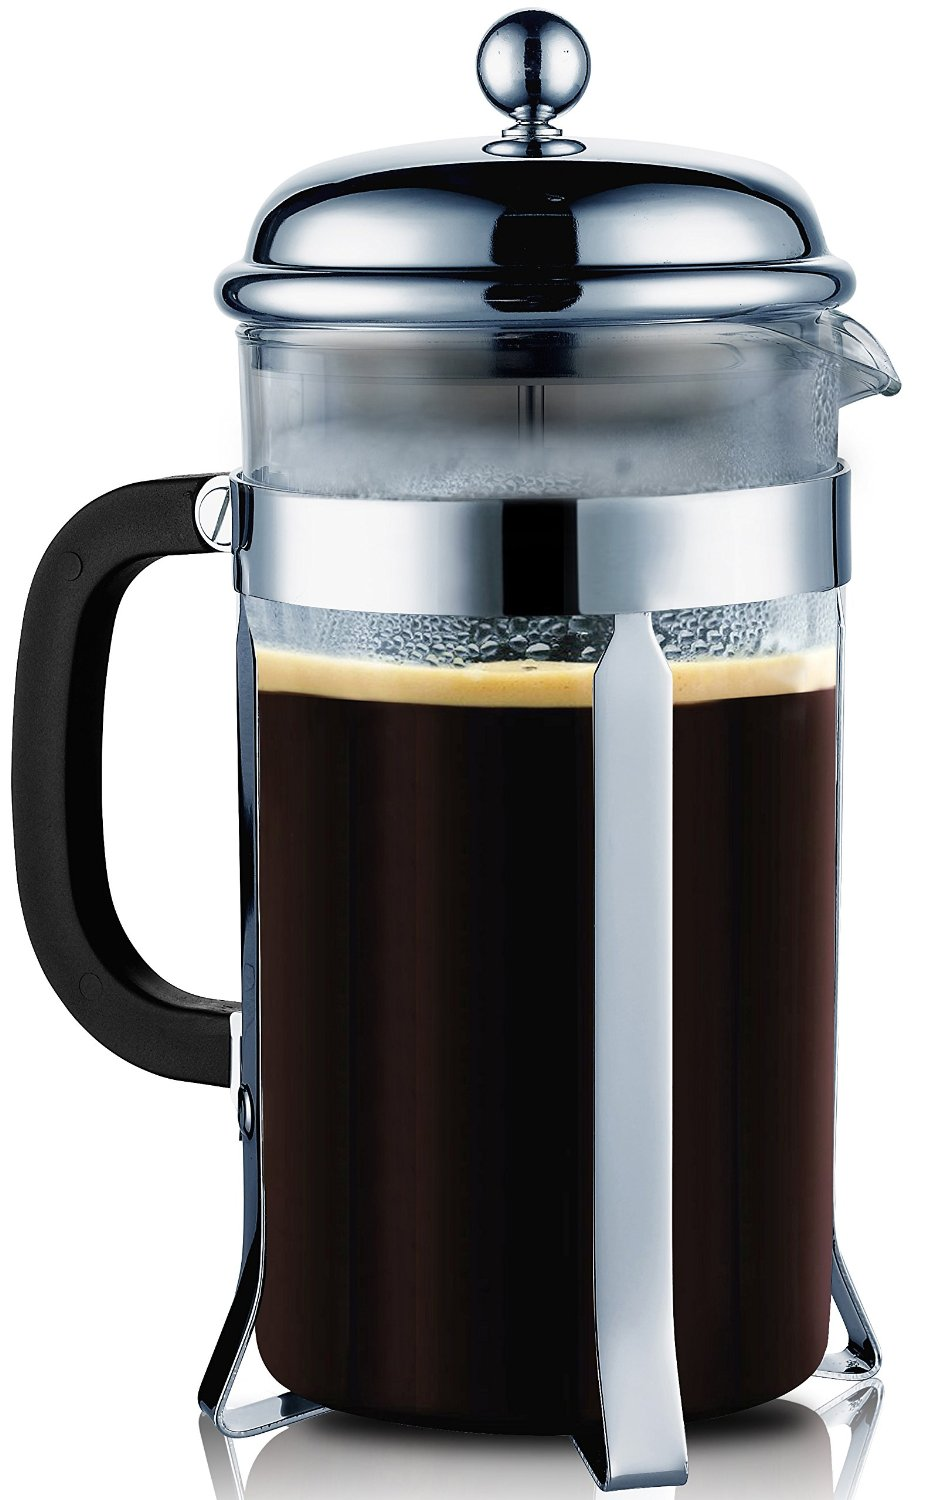 A Sterling Pro French Press coffee maker.